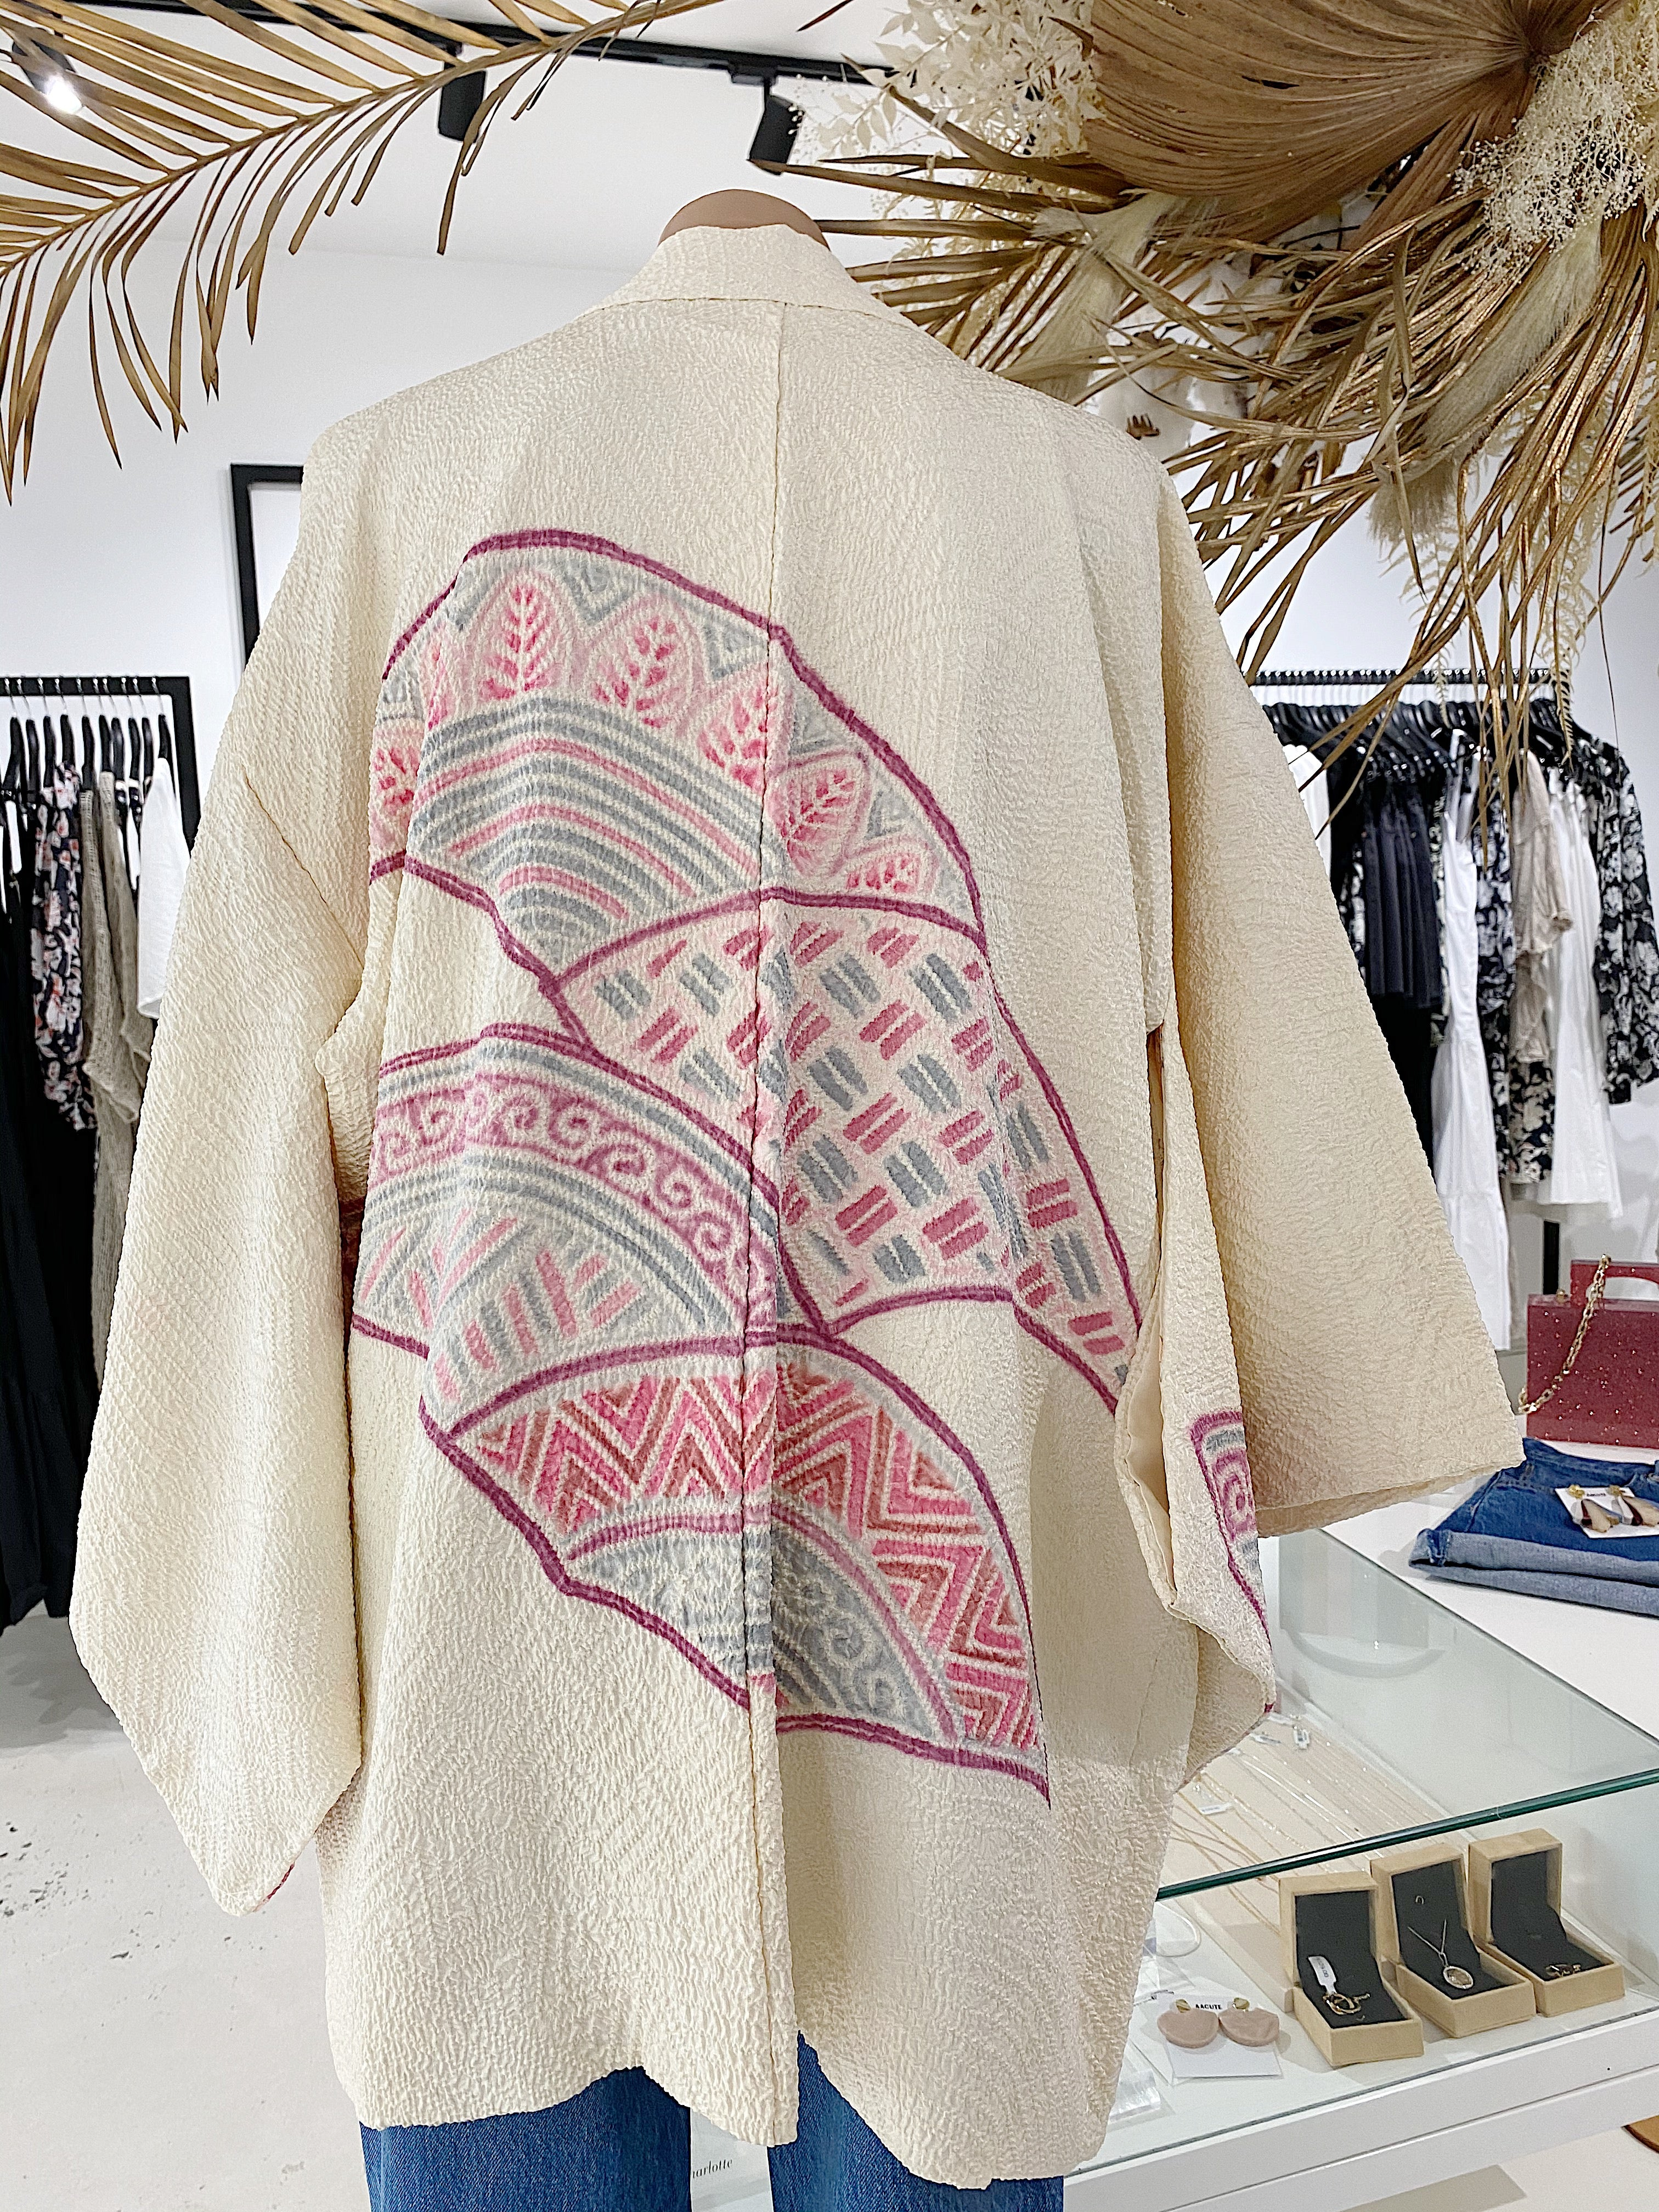 ÉSS THE LABEL FRANCESCA VINTAGE SILK KIMONO - CREAM FAN